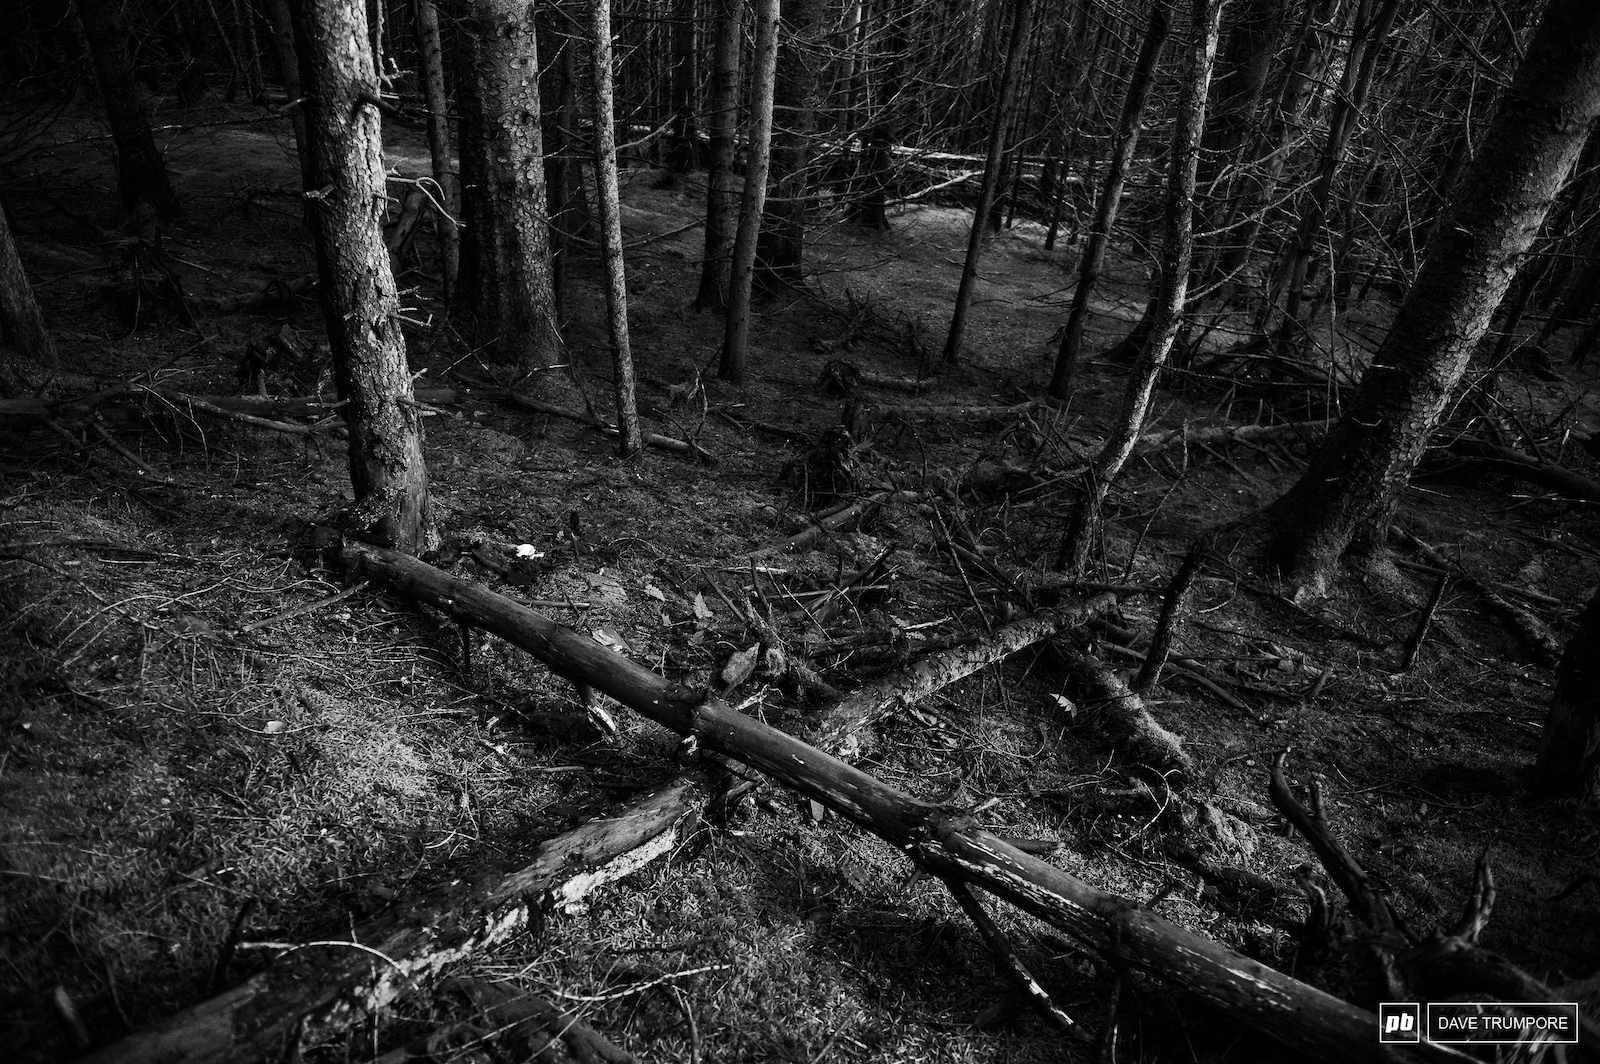 The woods are dark and the trees tight here in Scotland